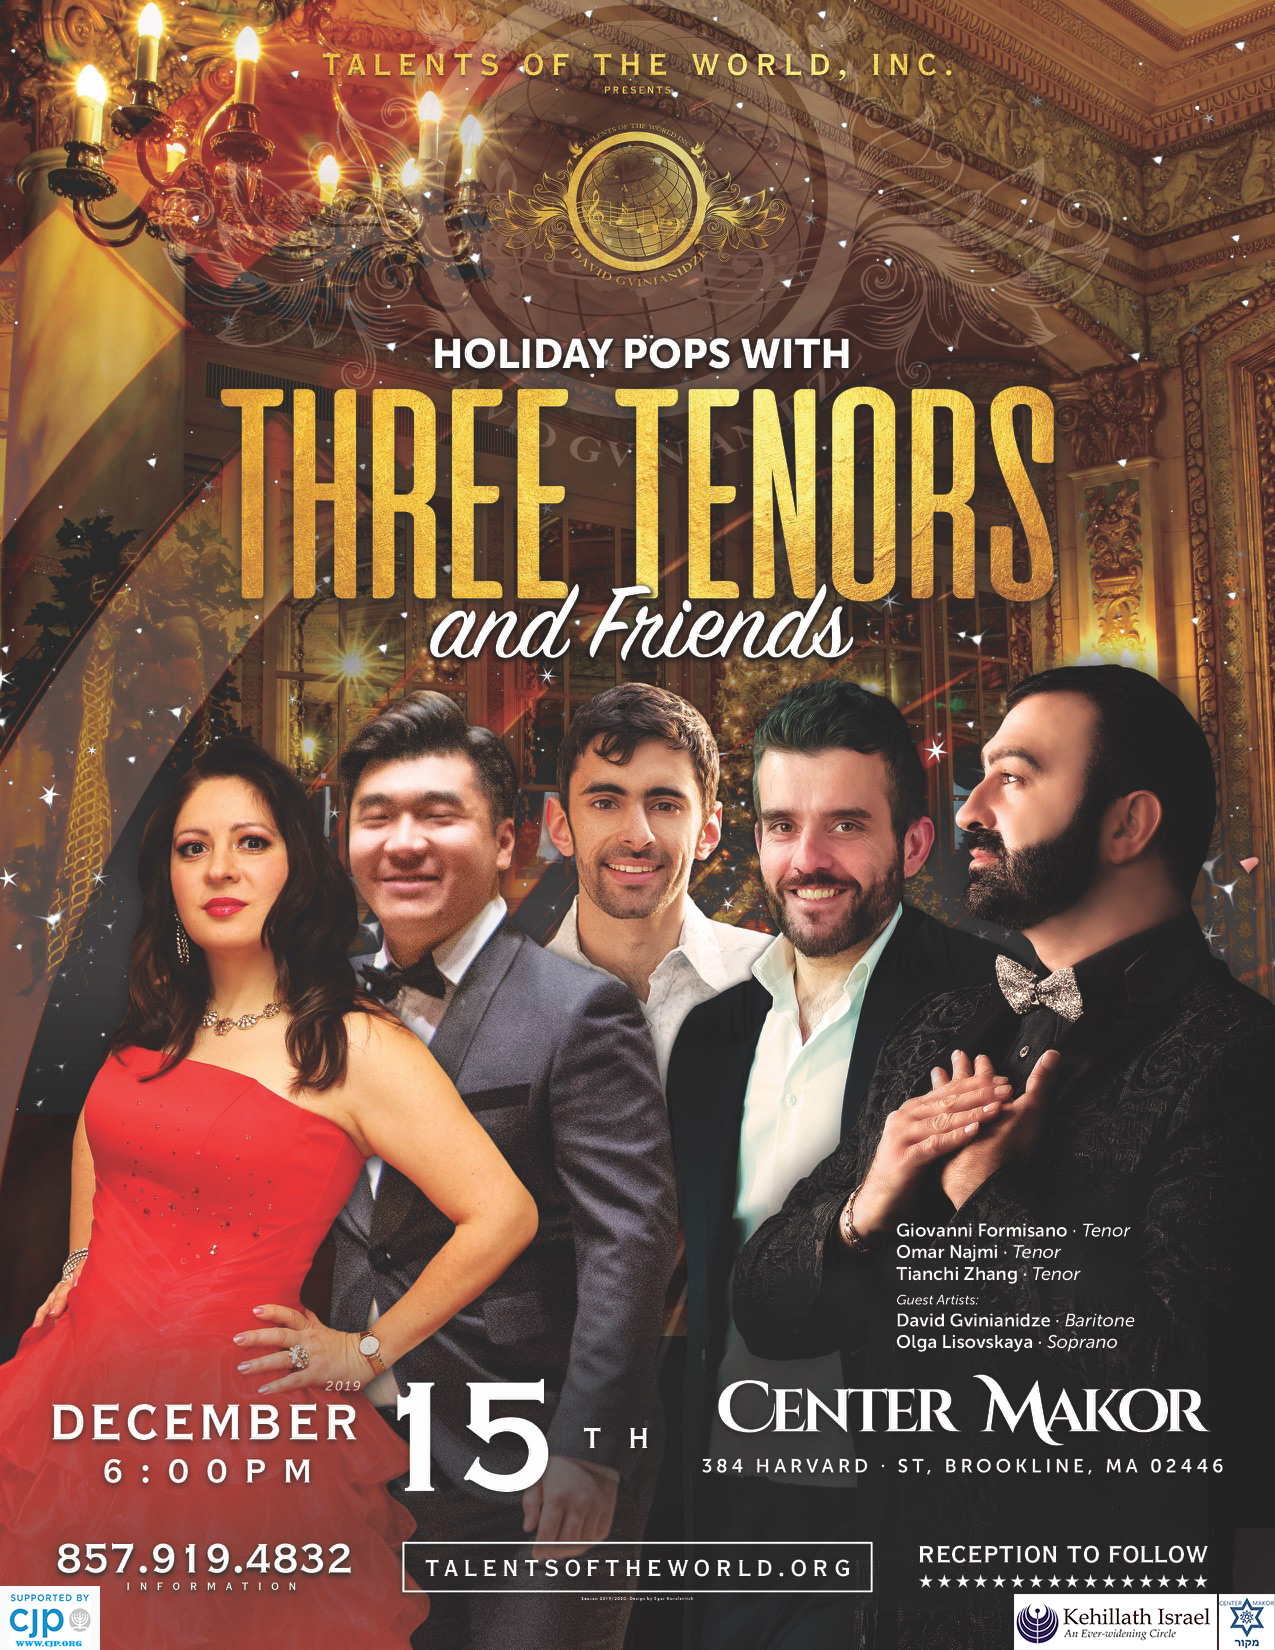 Holiday Pops with Three Tenors, and friends